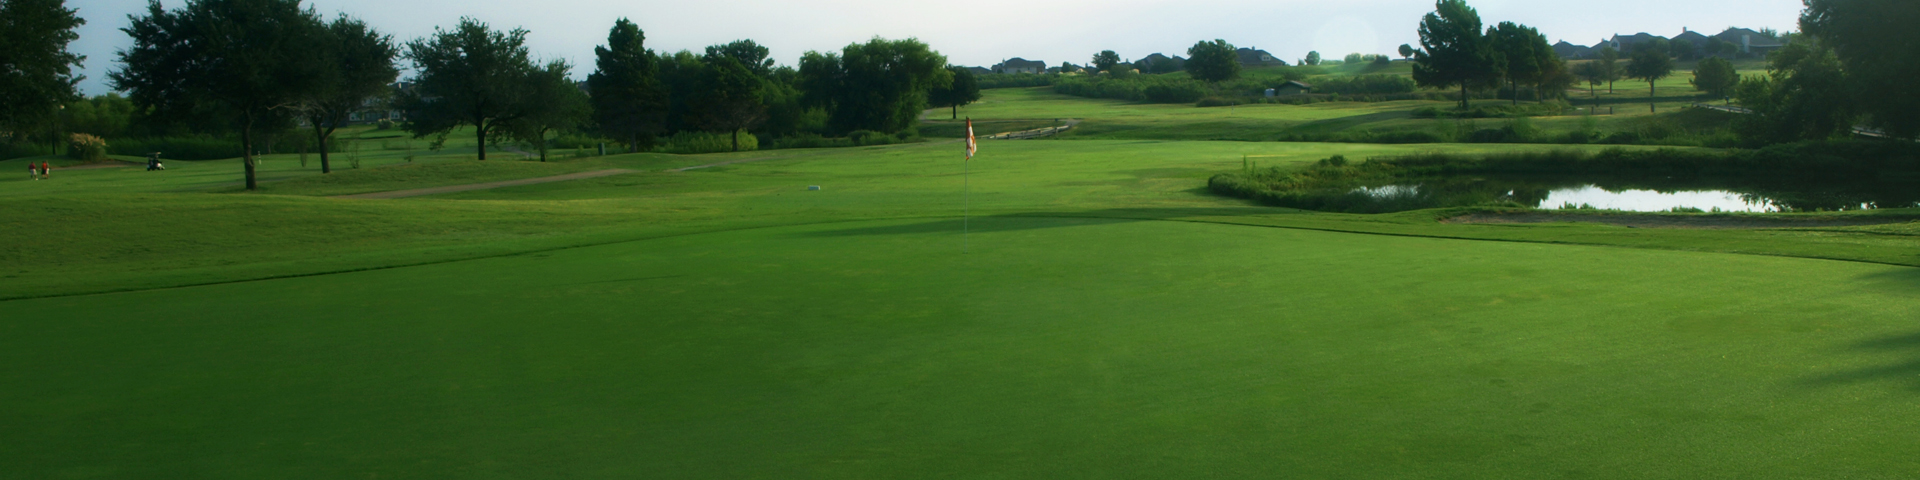 View of the greens for one of the holes on the course at Blackhawk Golf Club in Pflugerville, Texas